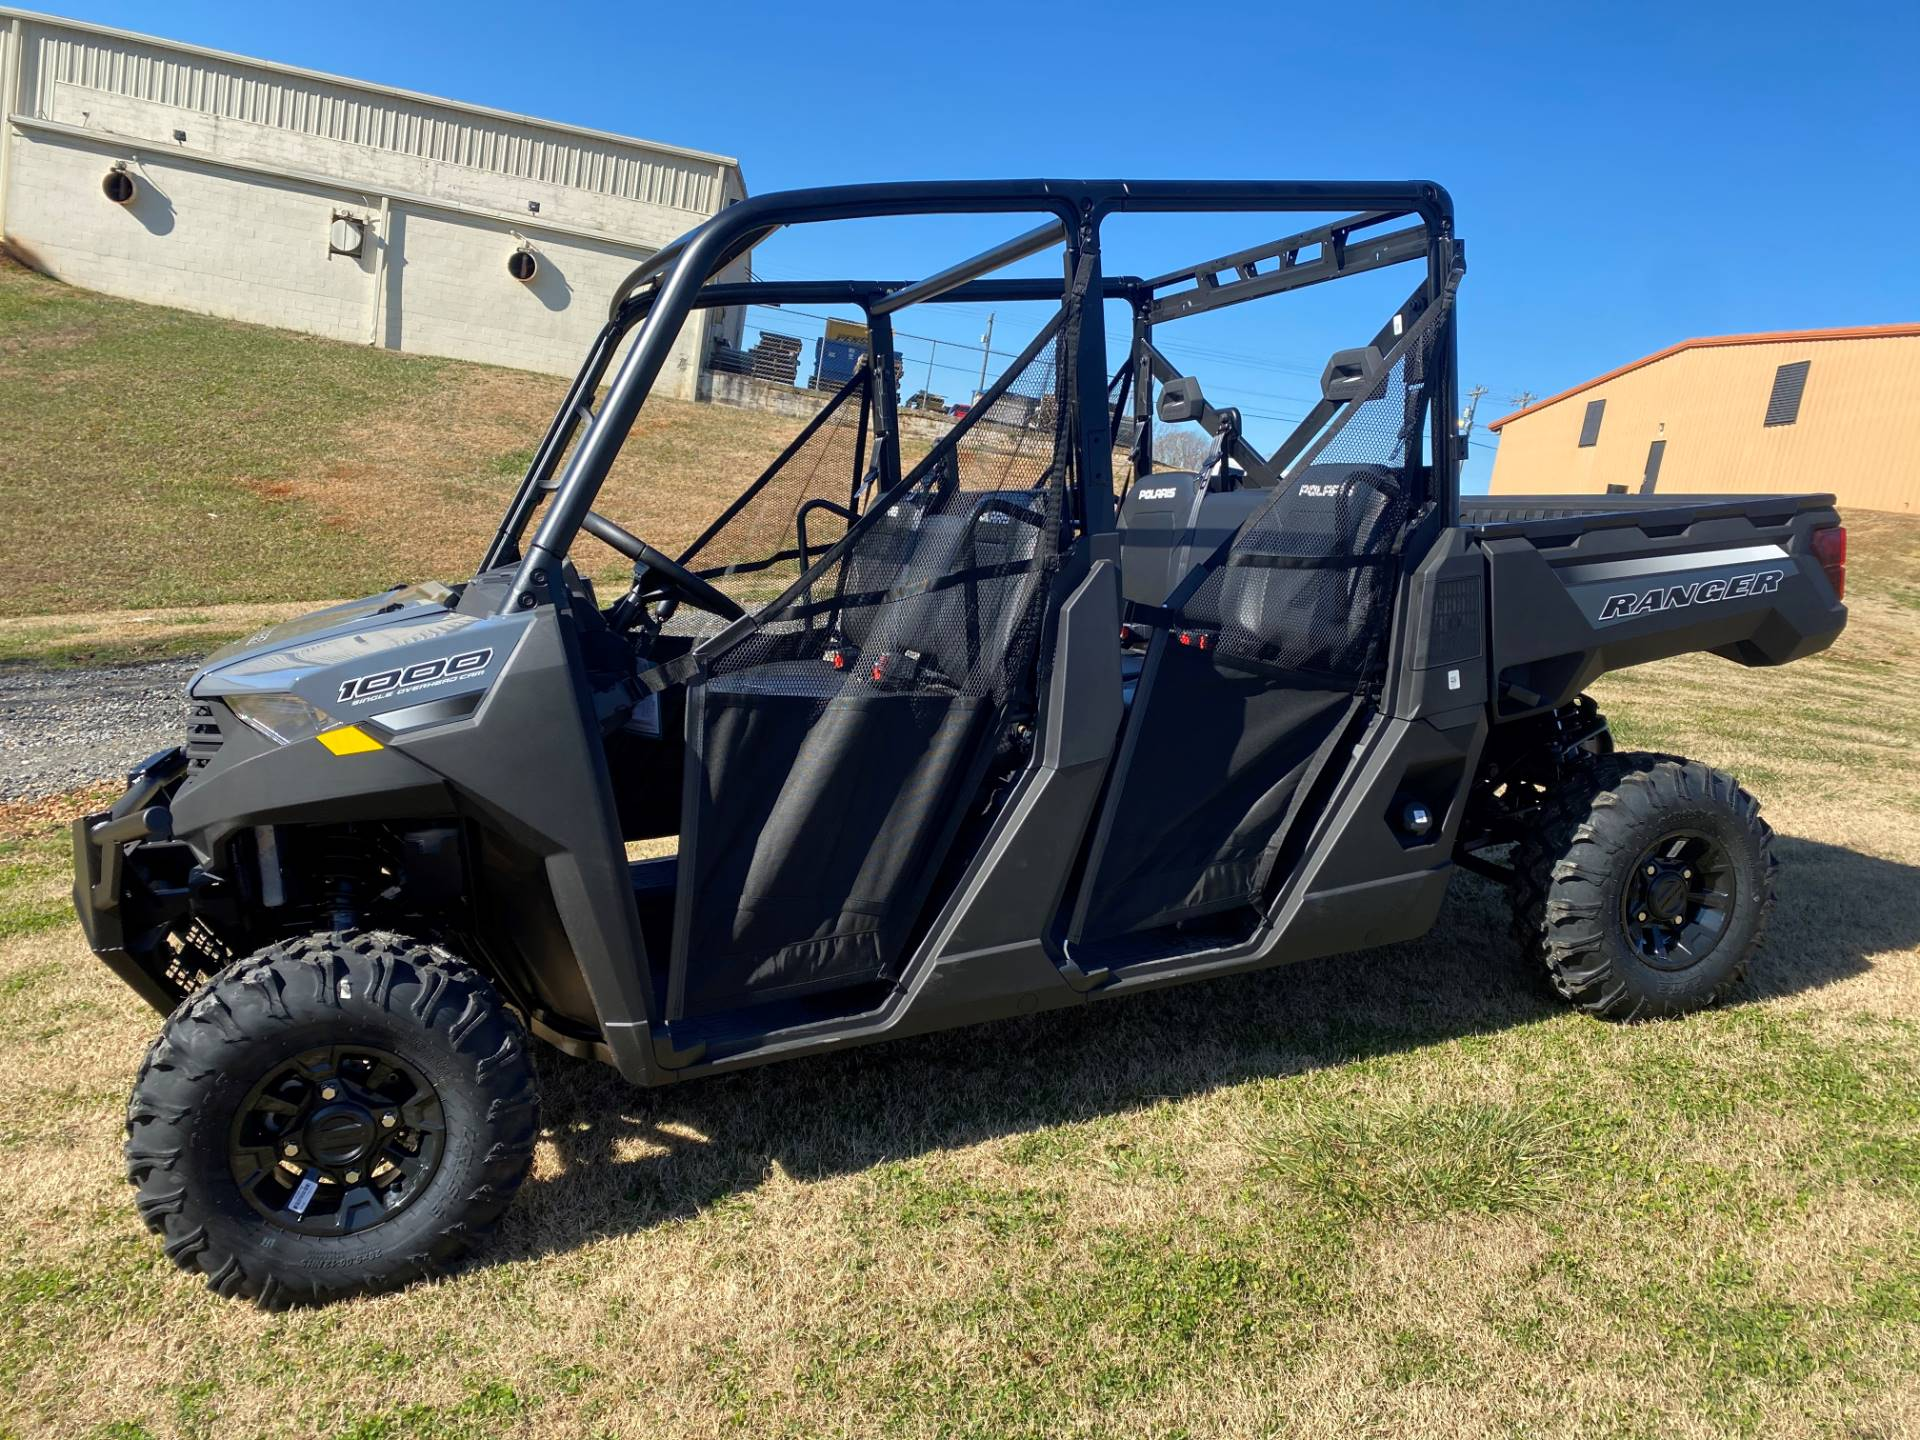 2021 Polaris Ranger Crew 1000 Premium in Greer, South Carolina - Photo 4